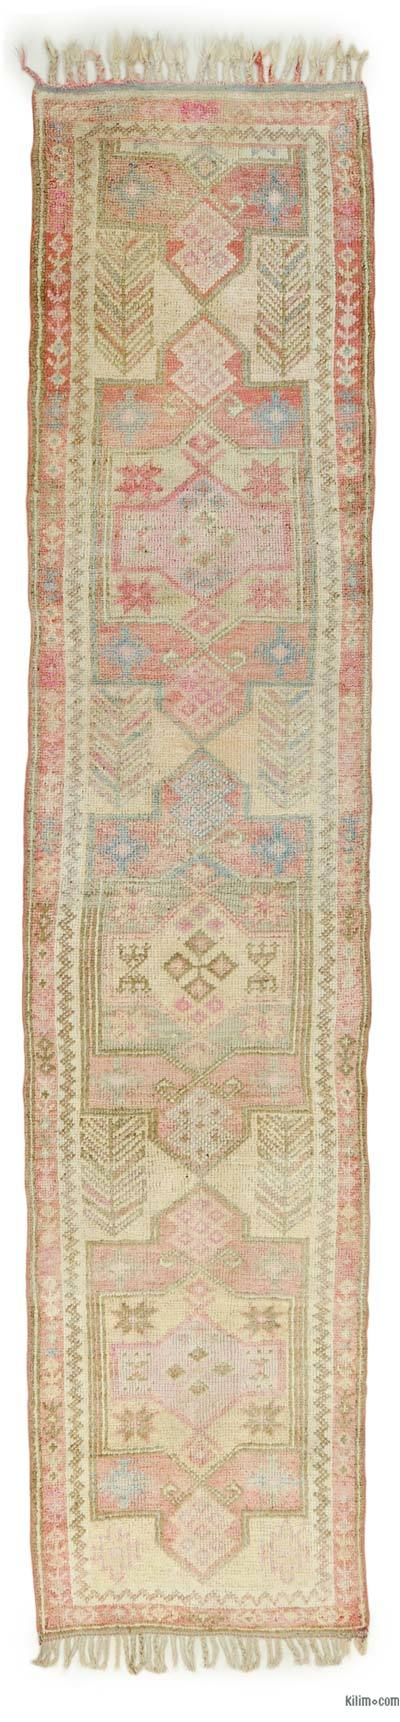 "Vintage Turkish Runner Rug - 2' 10"" x 12' 6"" (34 in. x 150 in.)"